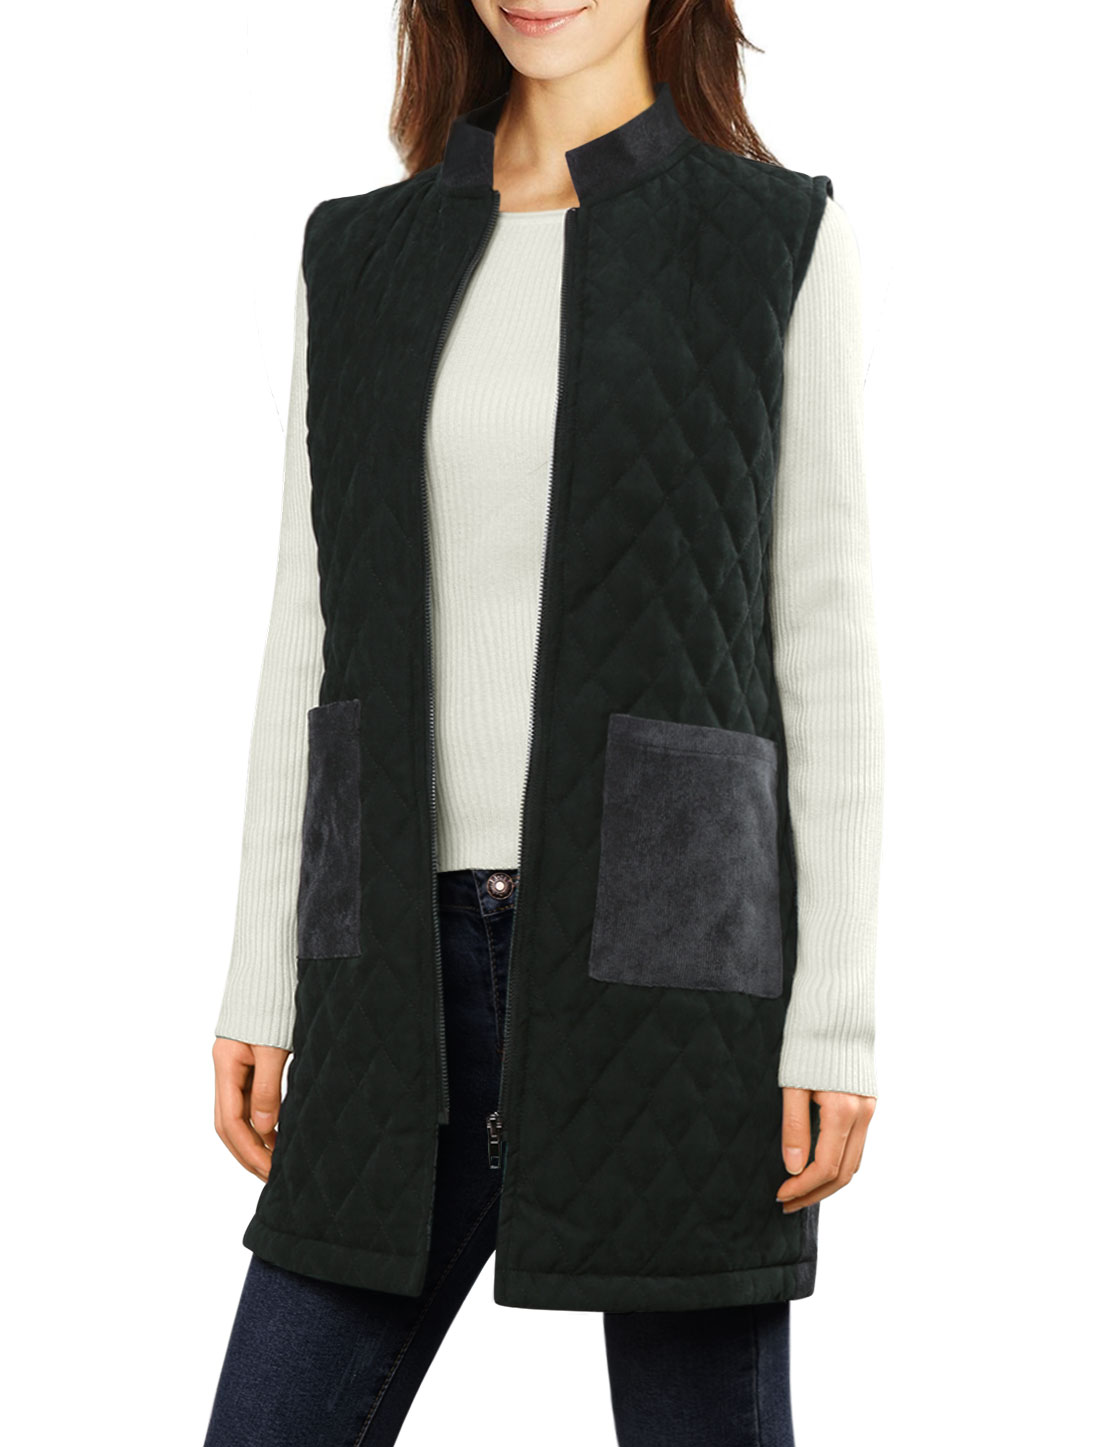 Woman Stand Collar Zip Up Corduroy Quilted Tunic Vest Charcoal Gray XS